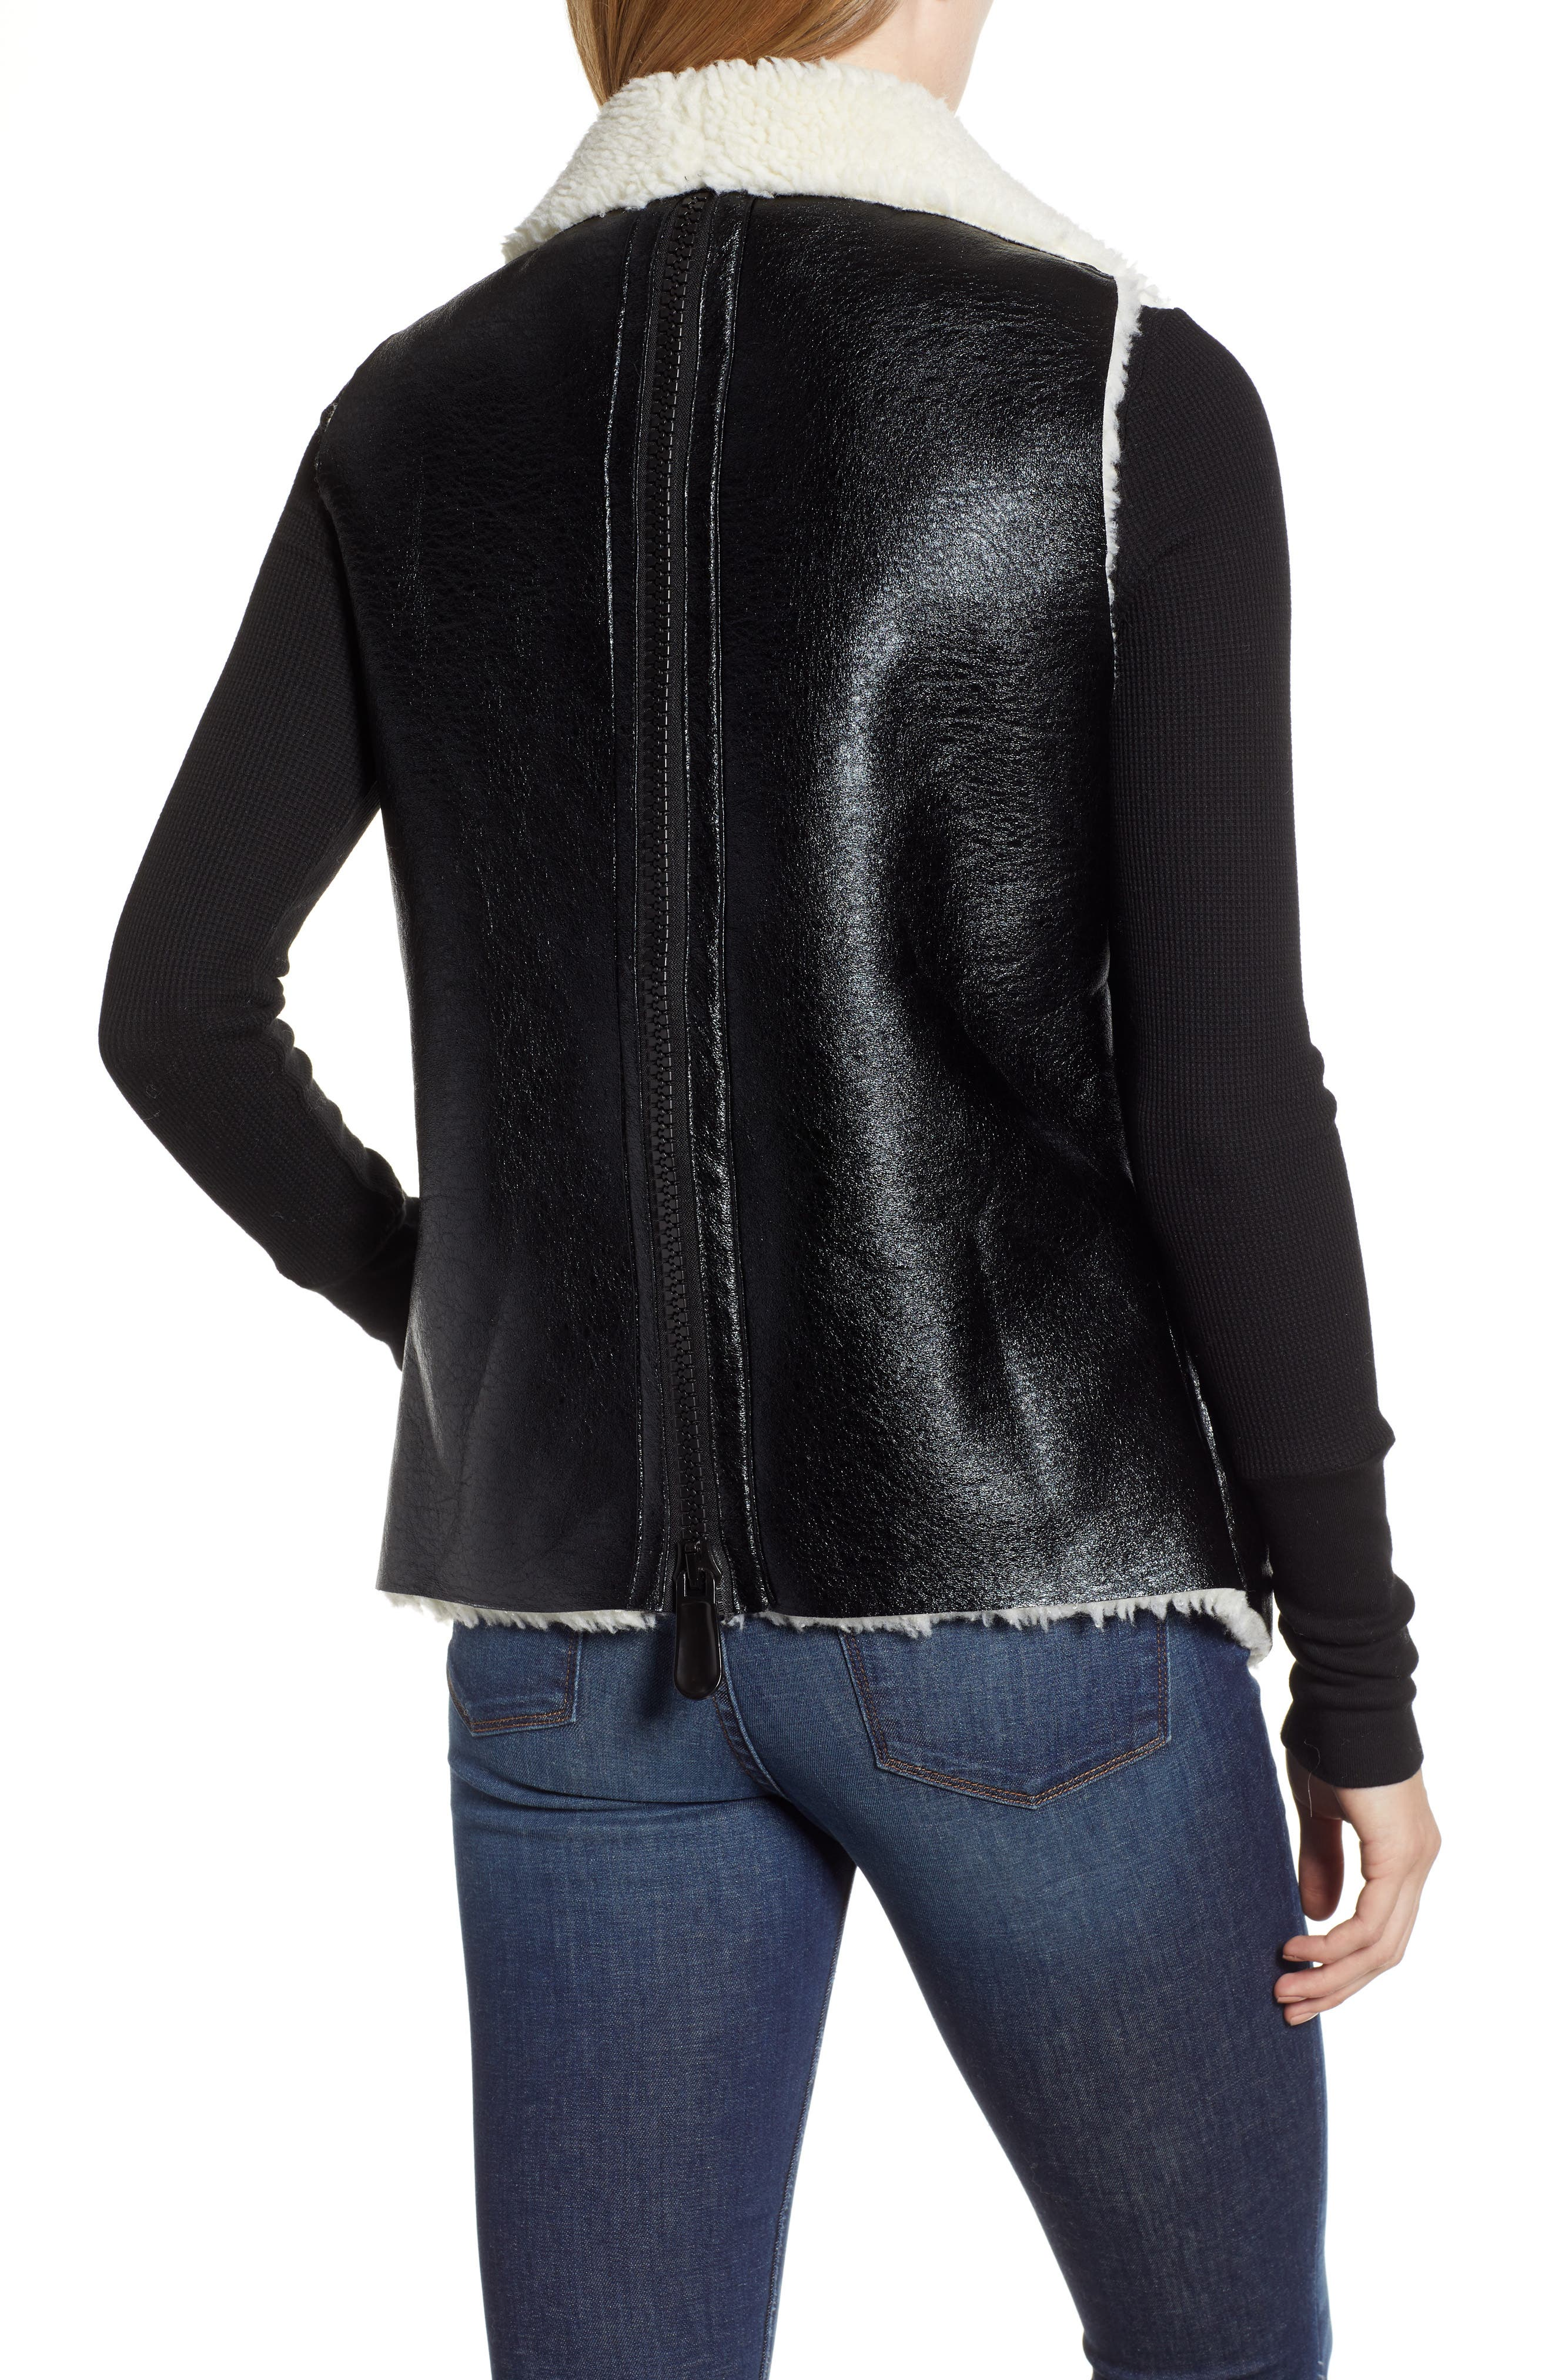 Fly Away Faux Shearling Back Zip Vest,                             Alternate thumbnail 2, color,                             BLACK